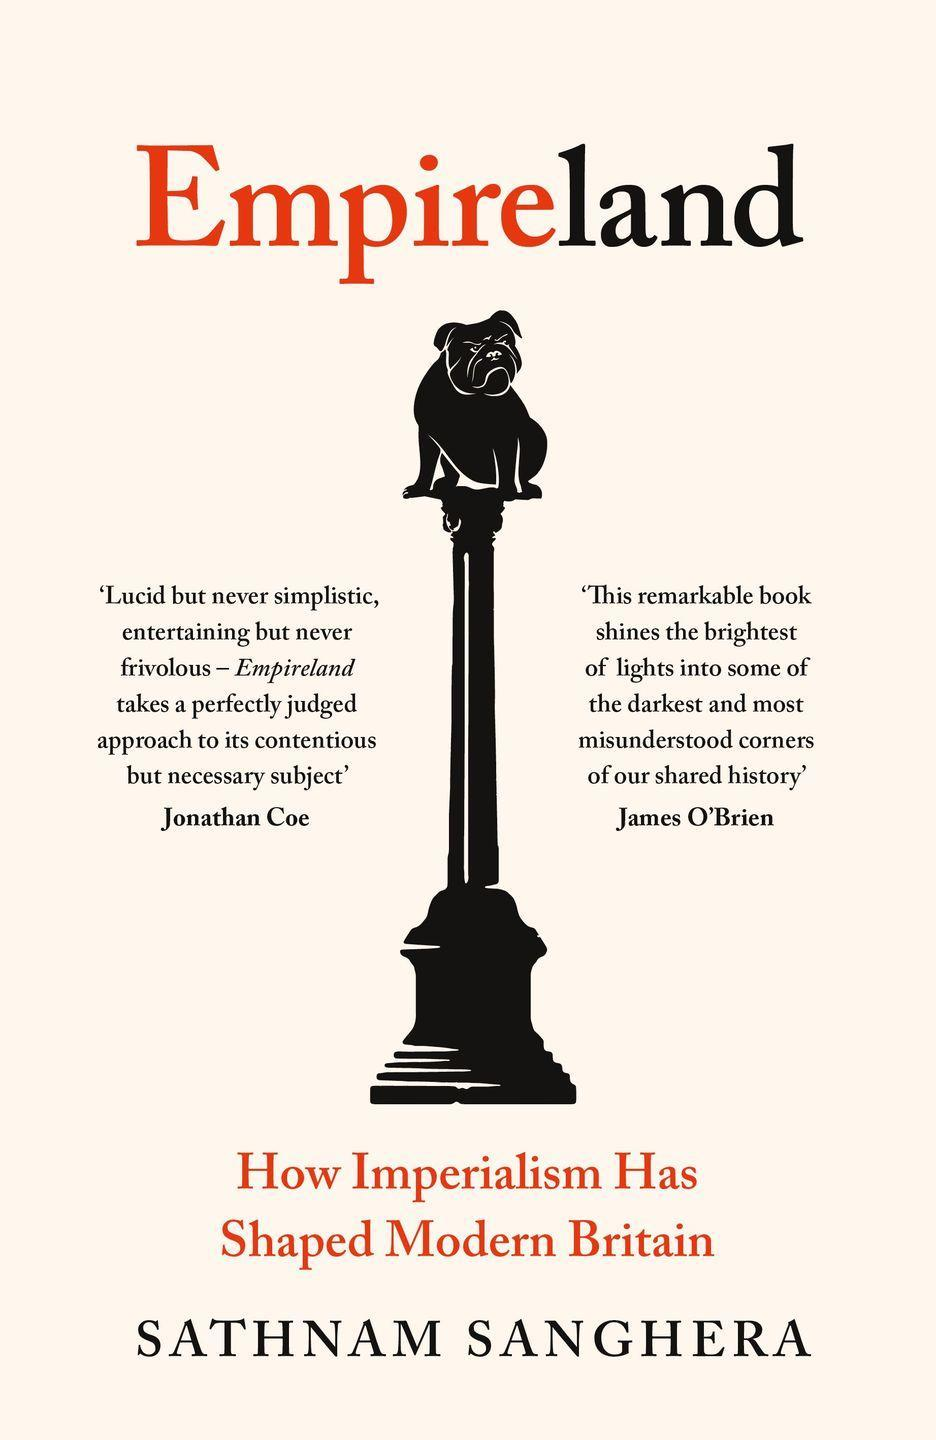 """<p>Interrogating the role of Empire in everything from the artefacts in museum collections to the origins of our nation's multiculturalism and racism, this clear-sighted book also manages to be empathetic and witty – testament to Sanghera's extraordinary skill in telling this complex story. It should be on every school's reading list. HL</p><p><a class=""""link rapid-noclick-resp"""" href=""""https://www.amazon.co.uk/Empireland-Imperialism-Shaped-Modern-Britain/dp/0241445299/ref=sr_1_1?crid=3V8OFMFNHZFSI&dchild=1&keywords=empireland+sathnam+sanghera&qid=1616005416&sprefix=EMPIRELAND%2Caps%2C152&sr=8-1&tag=hearstuk-yahoo-21&ascsubtag=%5Bartid%7C1927.g.35865085%5Bsrc%7Cyahoo-uk"""" rel=""""nofollow noopener"""" target=""""_blank"""" data-ylk=""""slk:SHOP NOW"""">SHOP NOW</a></p>"""